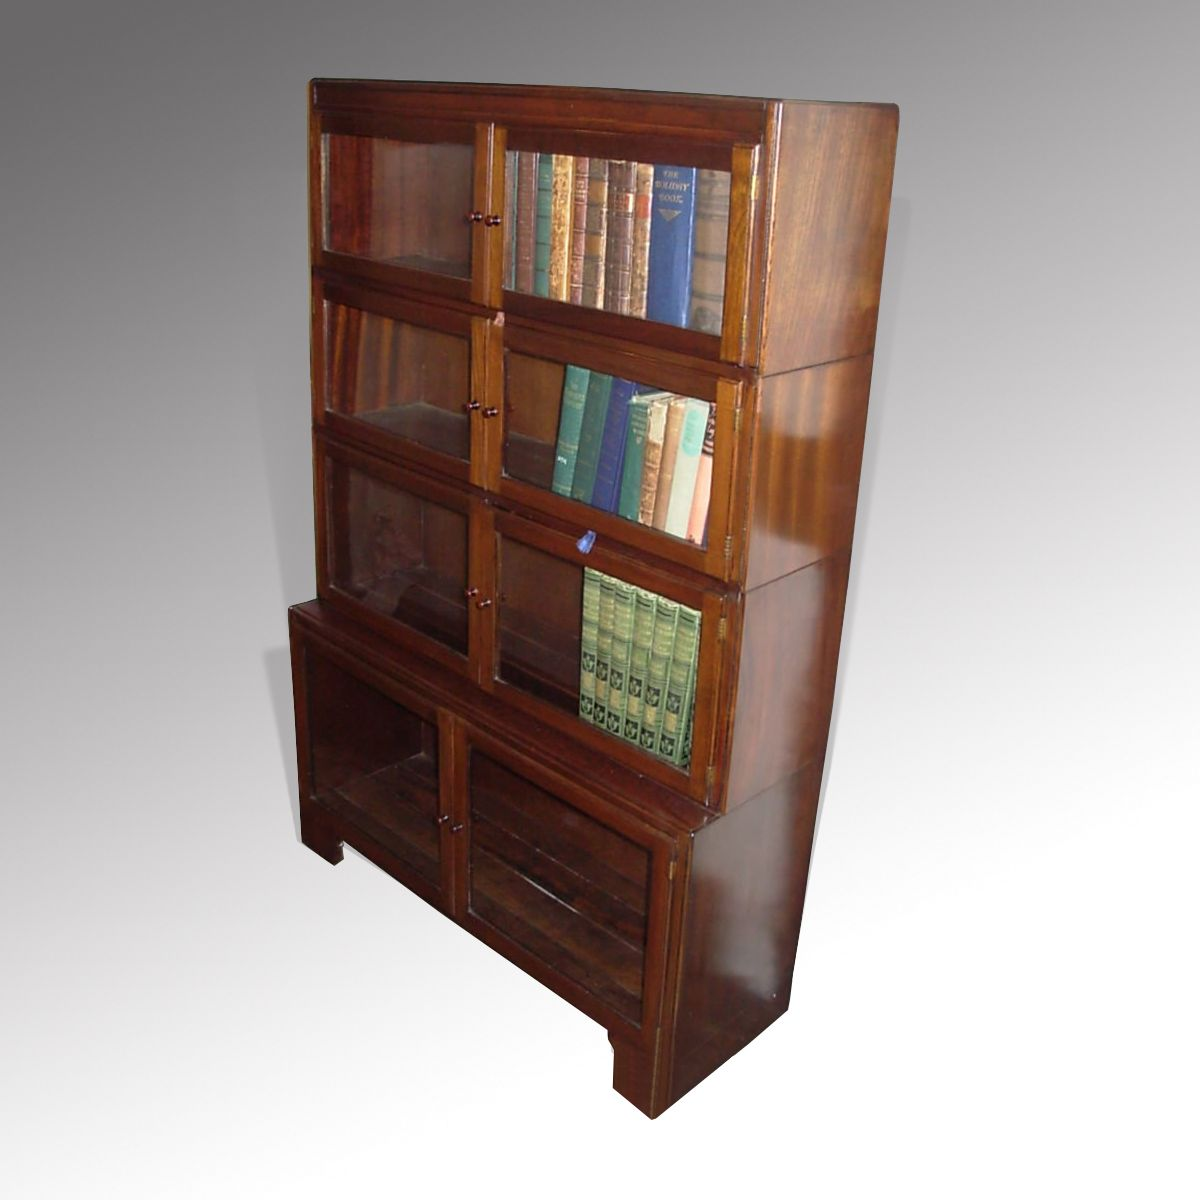 Vintage glazed bookcase by 'Minty'.  These were very popular in the 1930's Four separate interlocking sections make it very easy for moving.